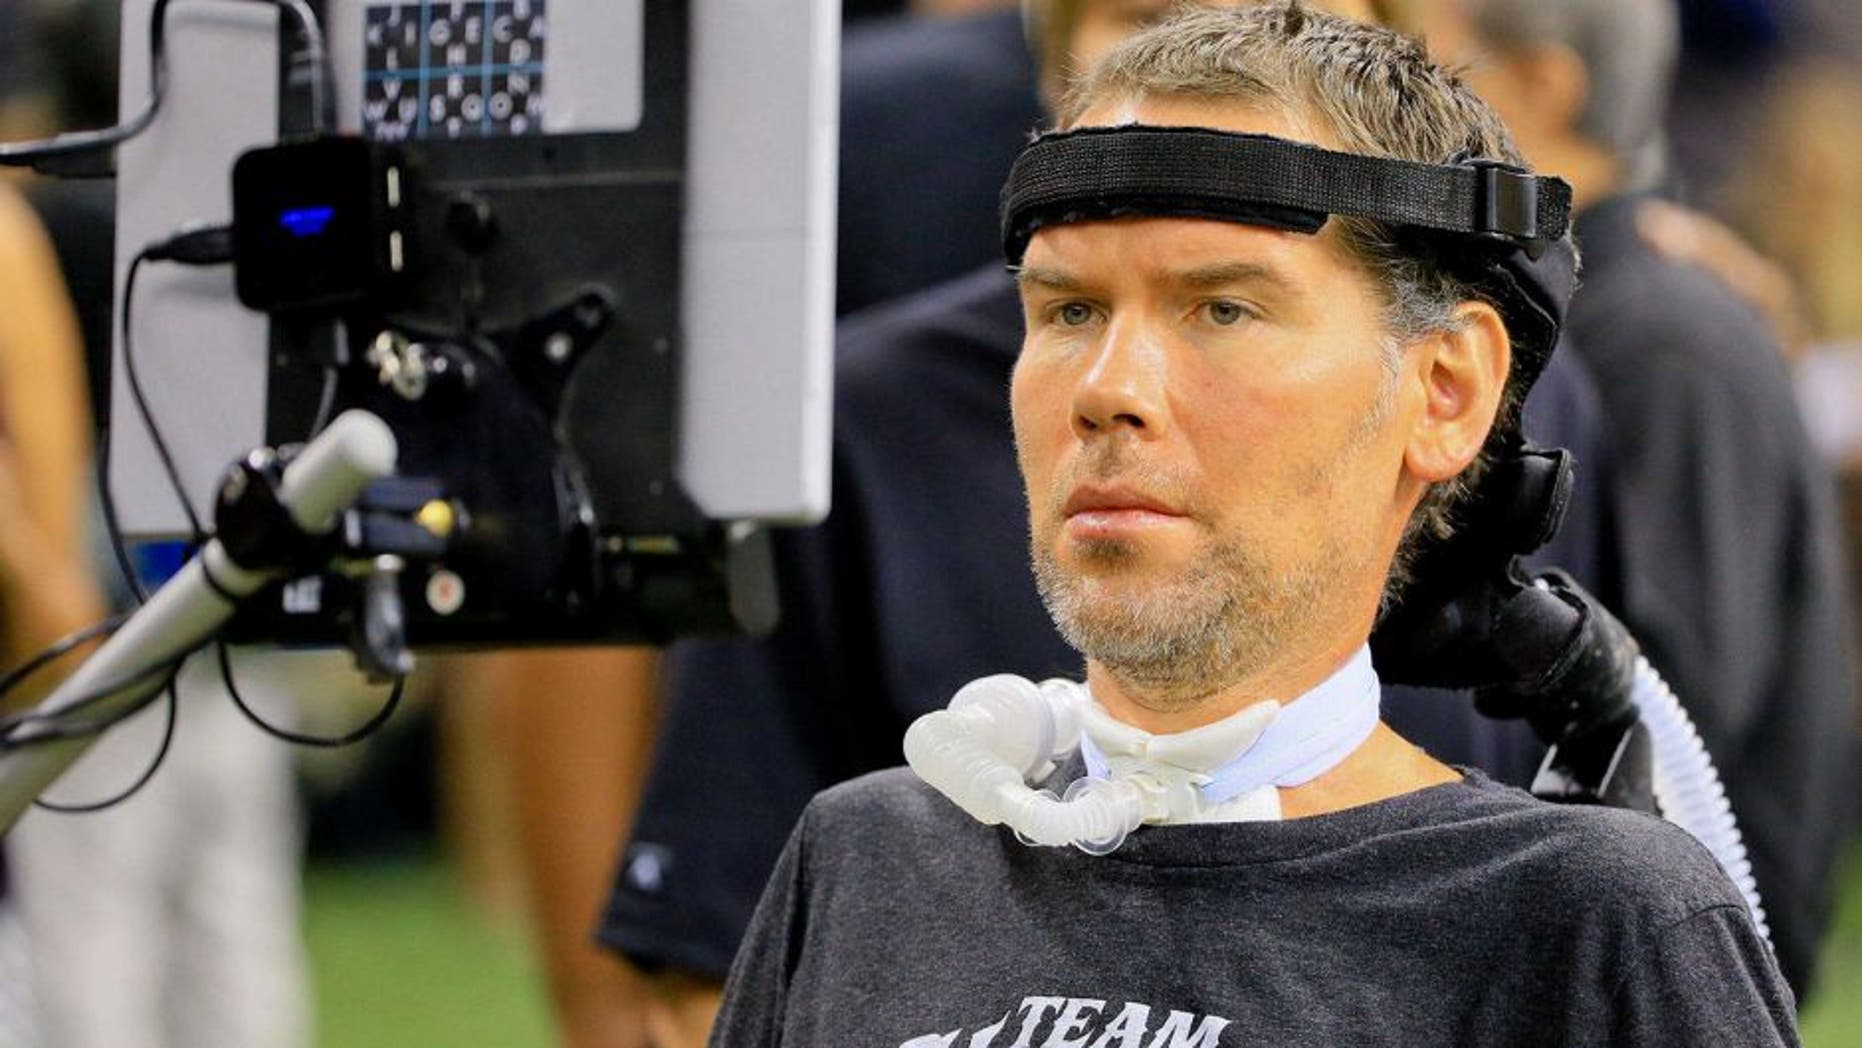 Sep 20, 2015; New Orleans, LA, USA; New Orleans Saints former player Steve Gleason who suffers from ALS is seen on the sideline during the second quarter of a game against the Tampa Bay Buccaneers at the Mercedes-Benz Superdome. Mandatory Credit: Derick E. Hingle-USA TODAY Sports